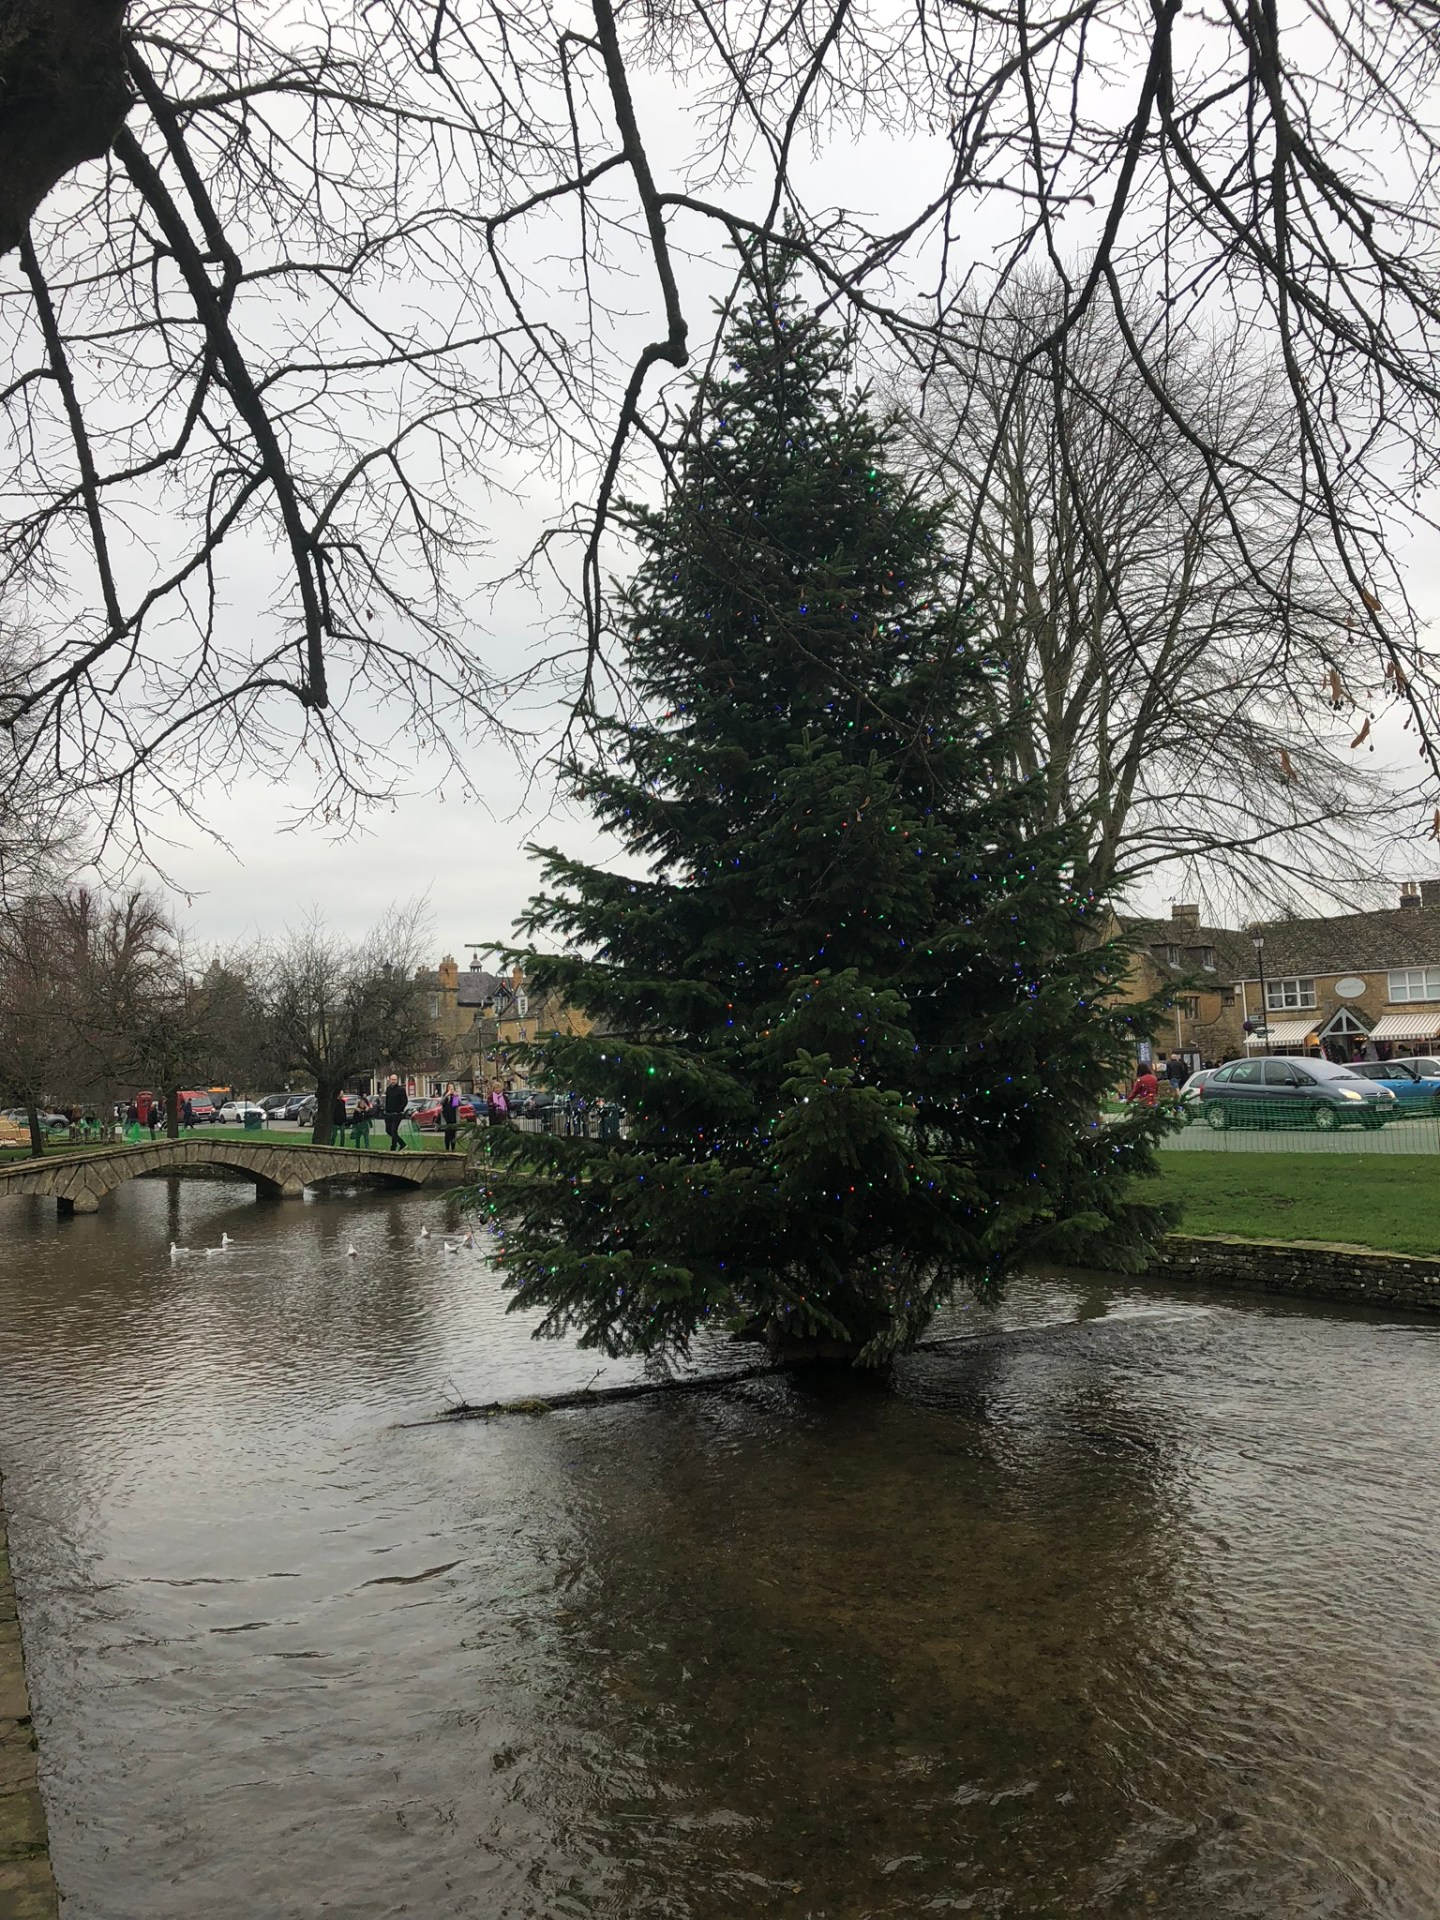 Christmas tree at Bourton on the Water